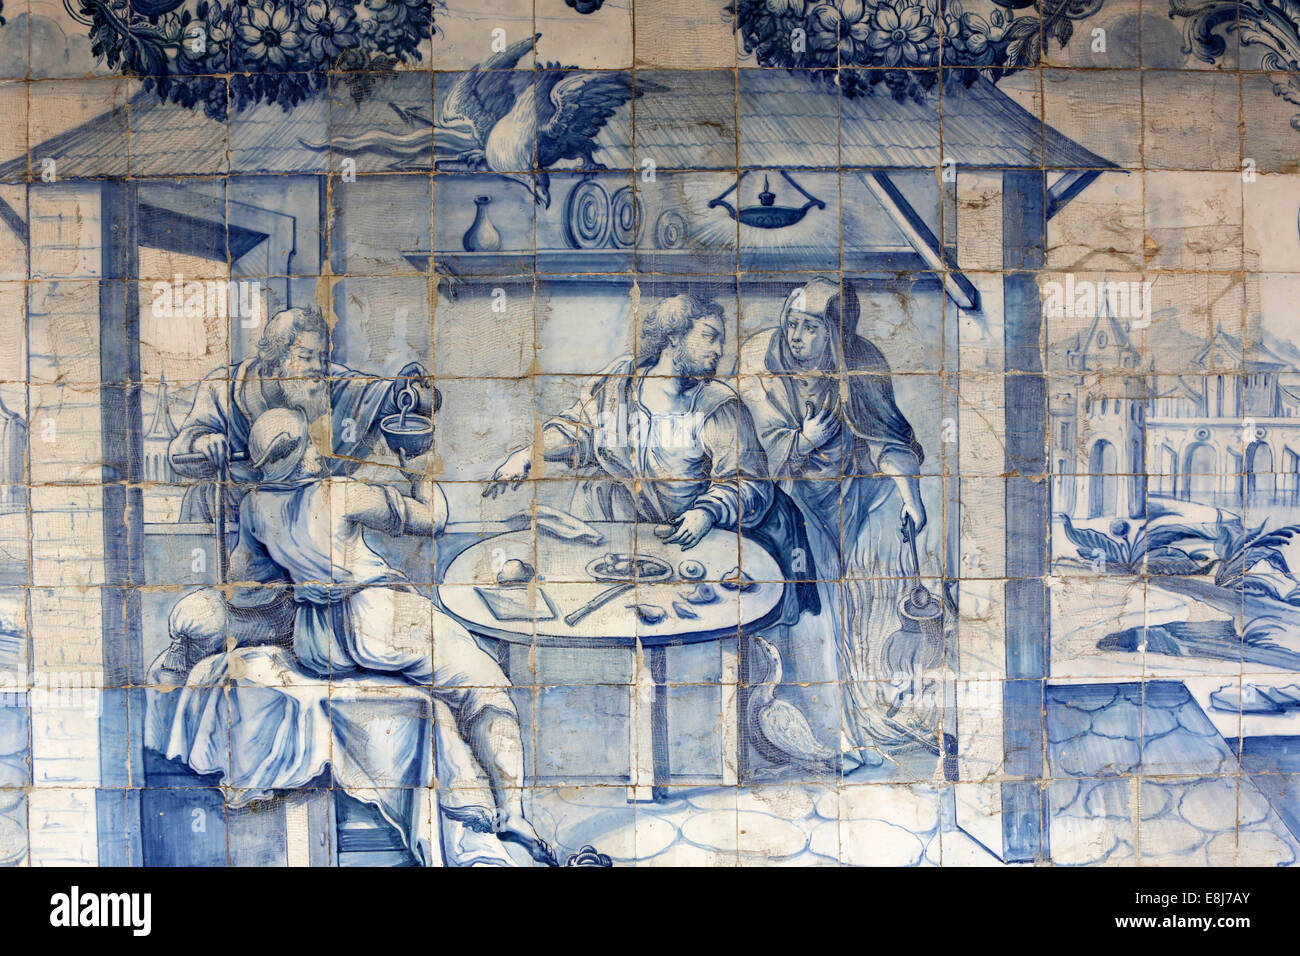 Azulejo in Sao Francisco's church cloister : One's own lot makes any one happy (Horace) - Stock Image